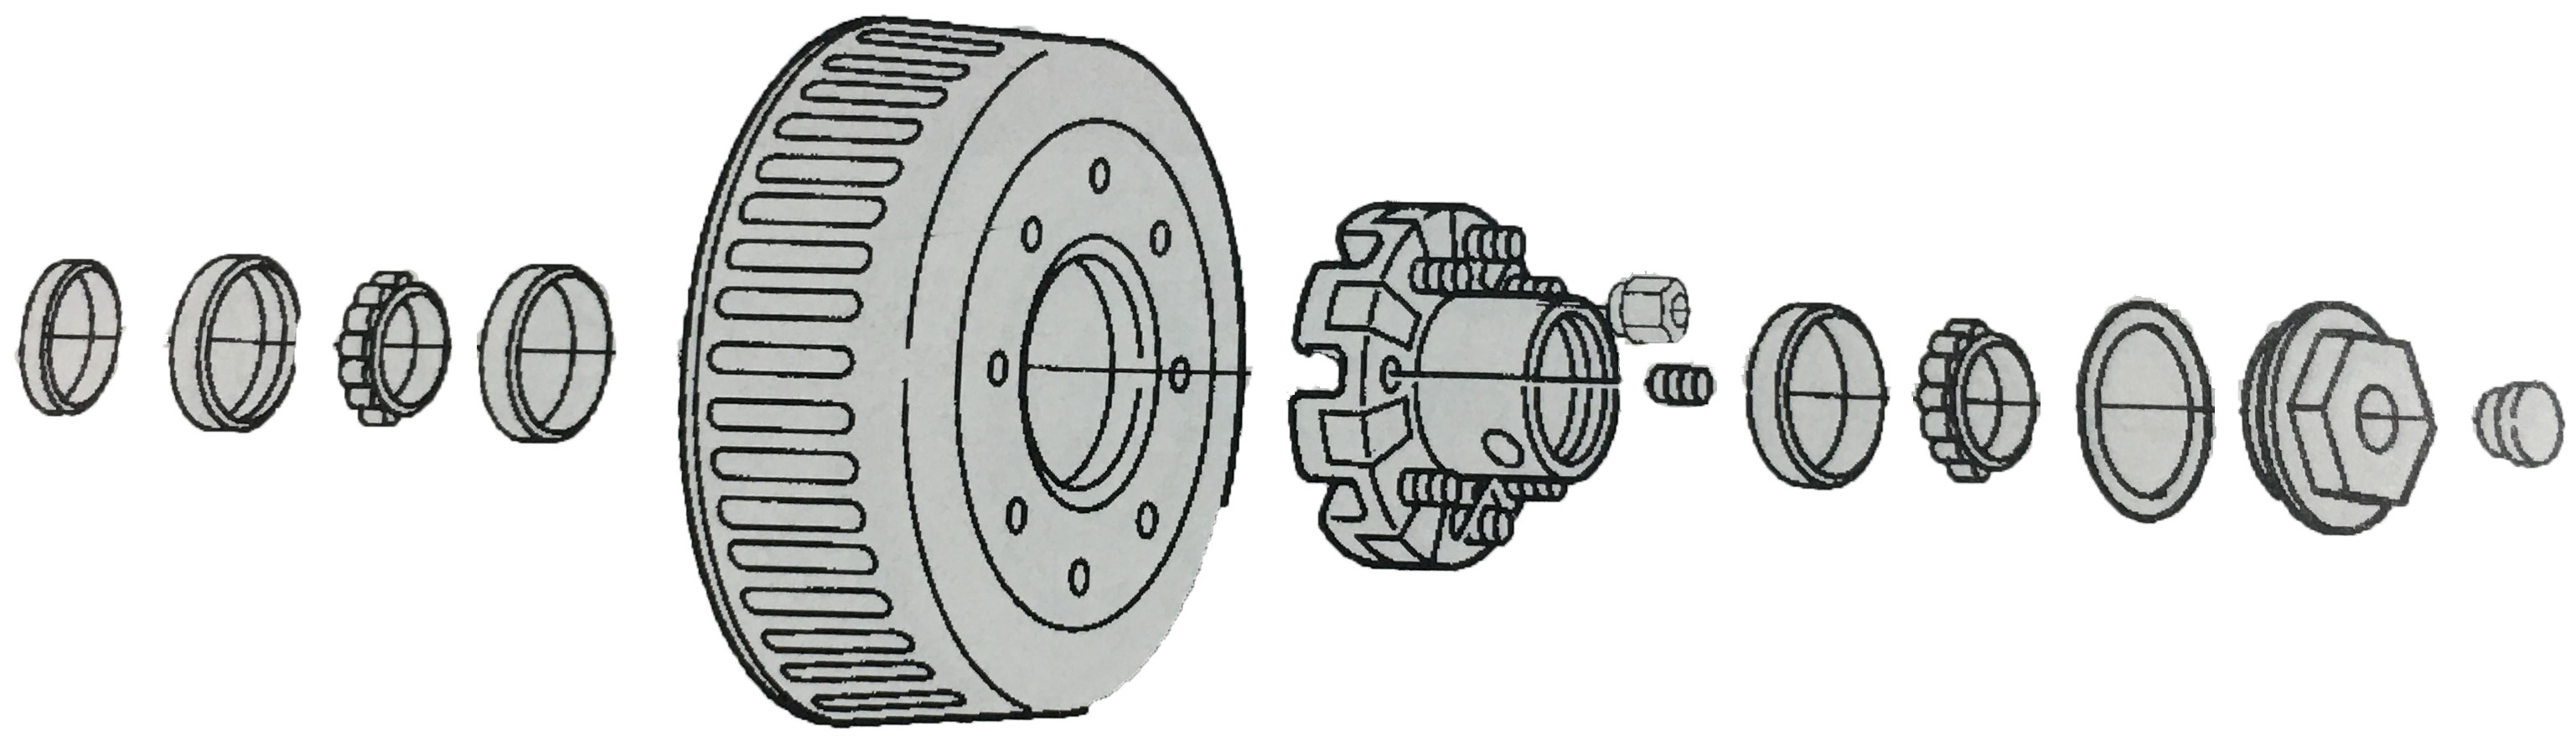 Dexter 10K heavy duty hub and drum for 12 1/4